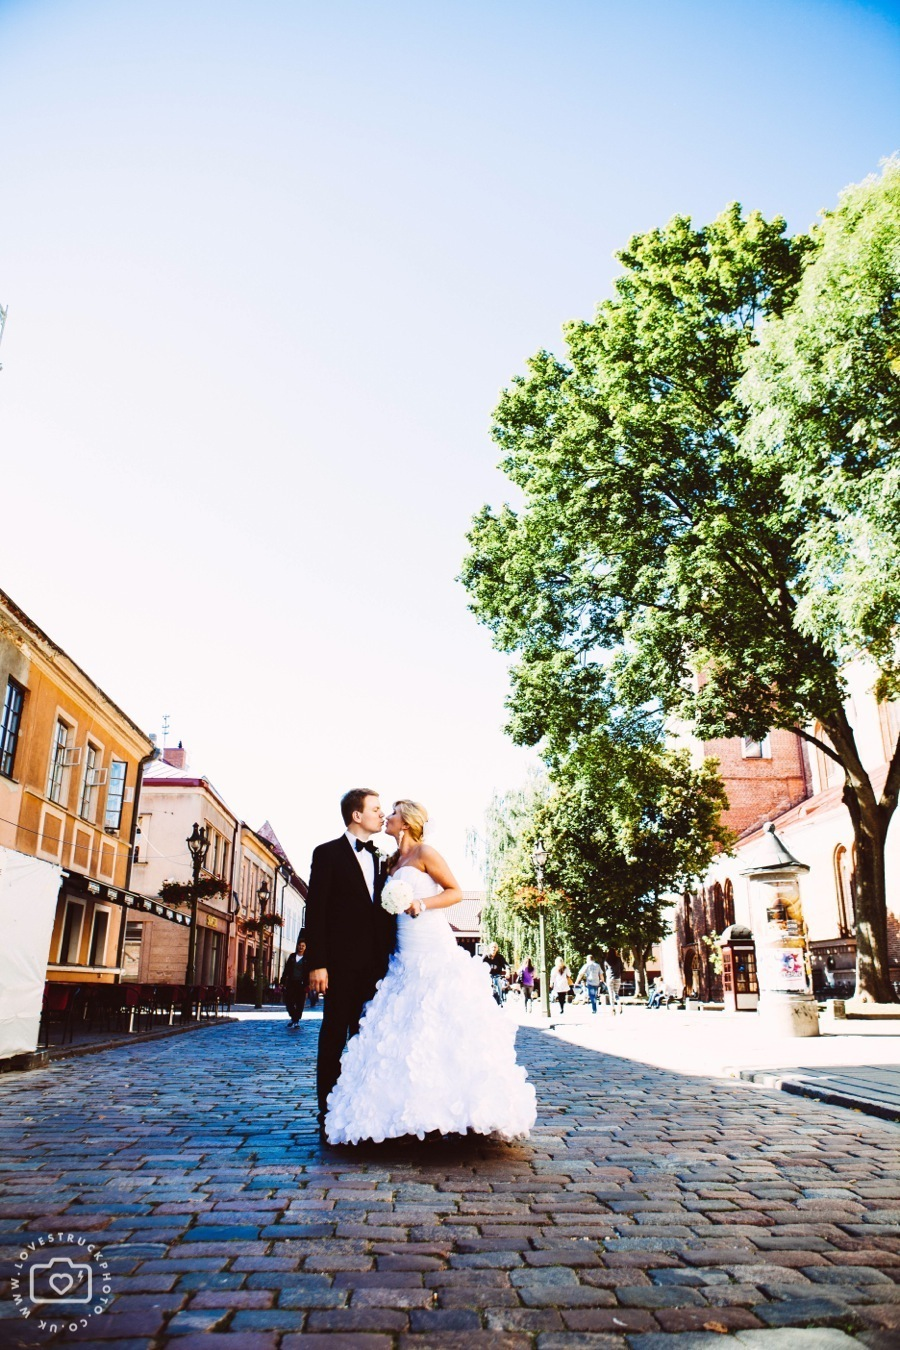 Lithuanian Destination Wedding Photography, Quirky wedding photography